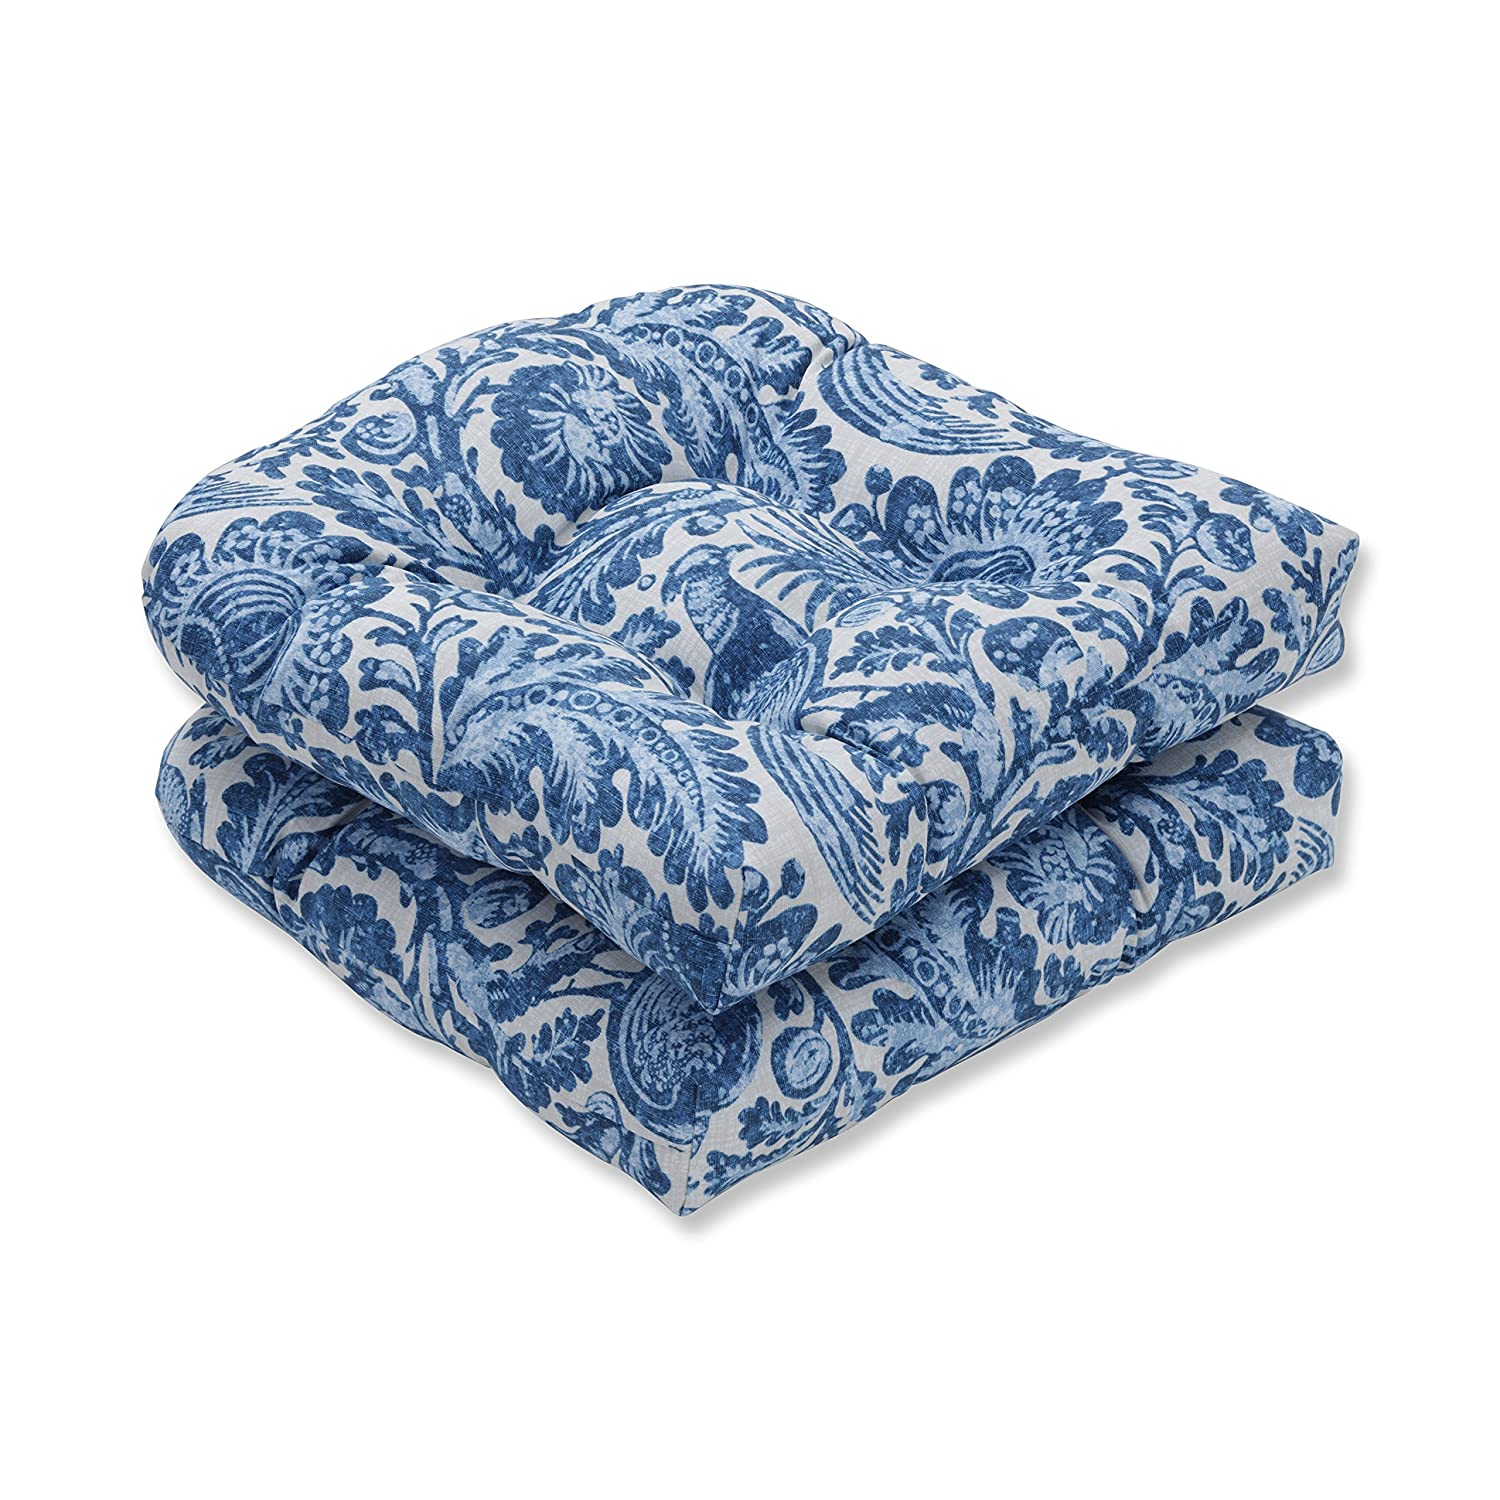 Pillow Perfect Outdoor Indoor Tucker Resist Azure Wicker Seat Cushion Set of 2 , Blue 19 X 19 X 5